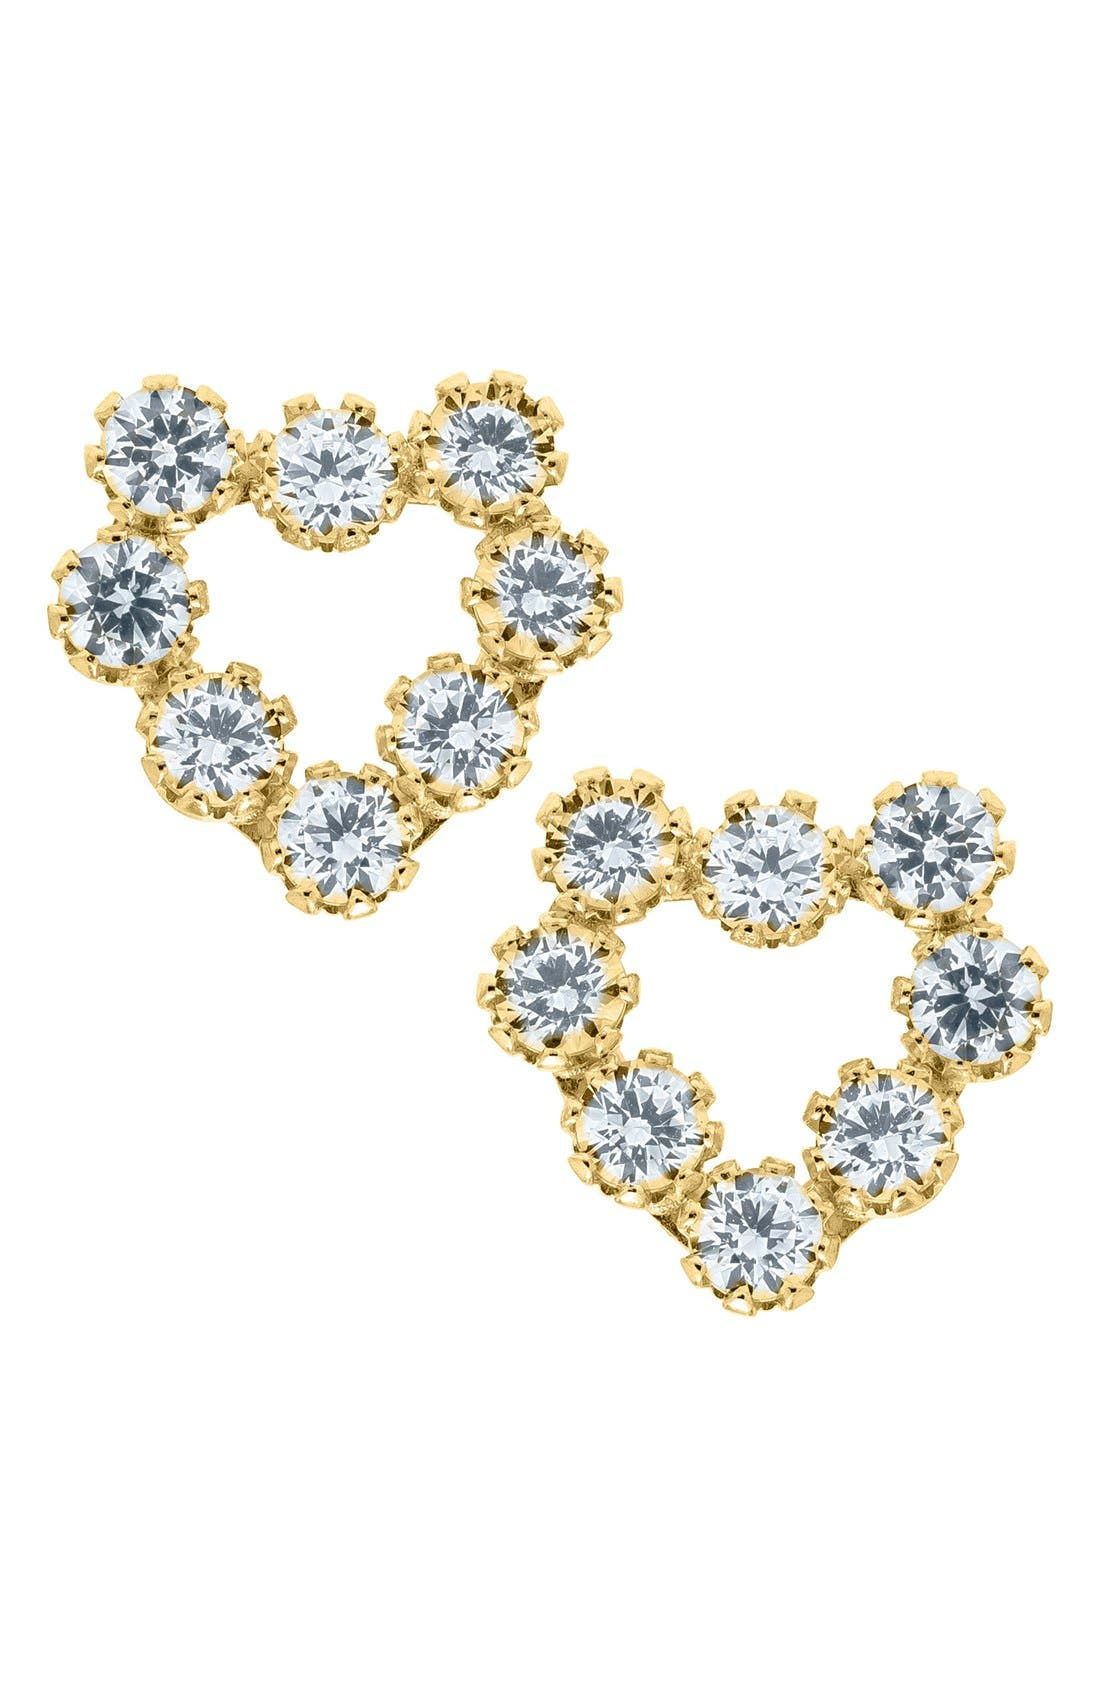 Alternate Image 1 Selected - Mignonette 14k Gold & Cubic Zirconia Heart Earrings (Baby Girls)